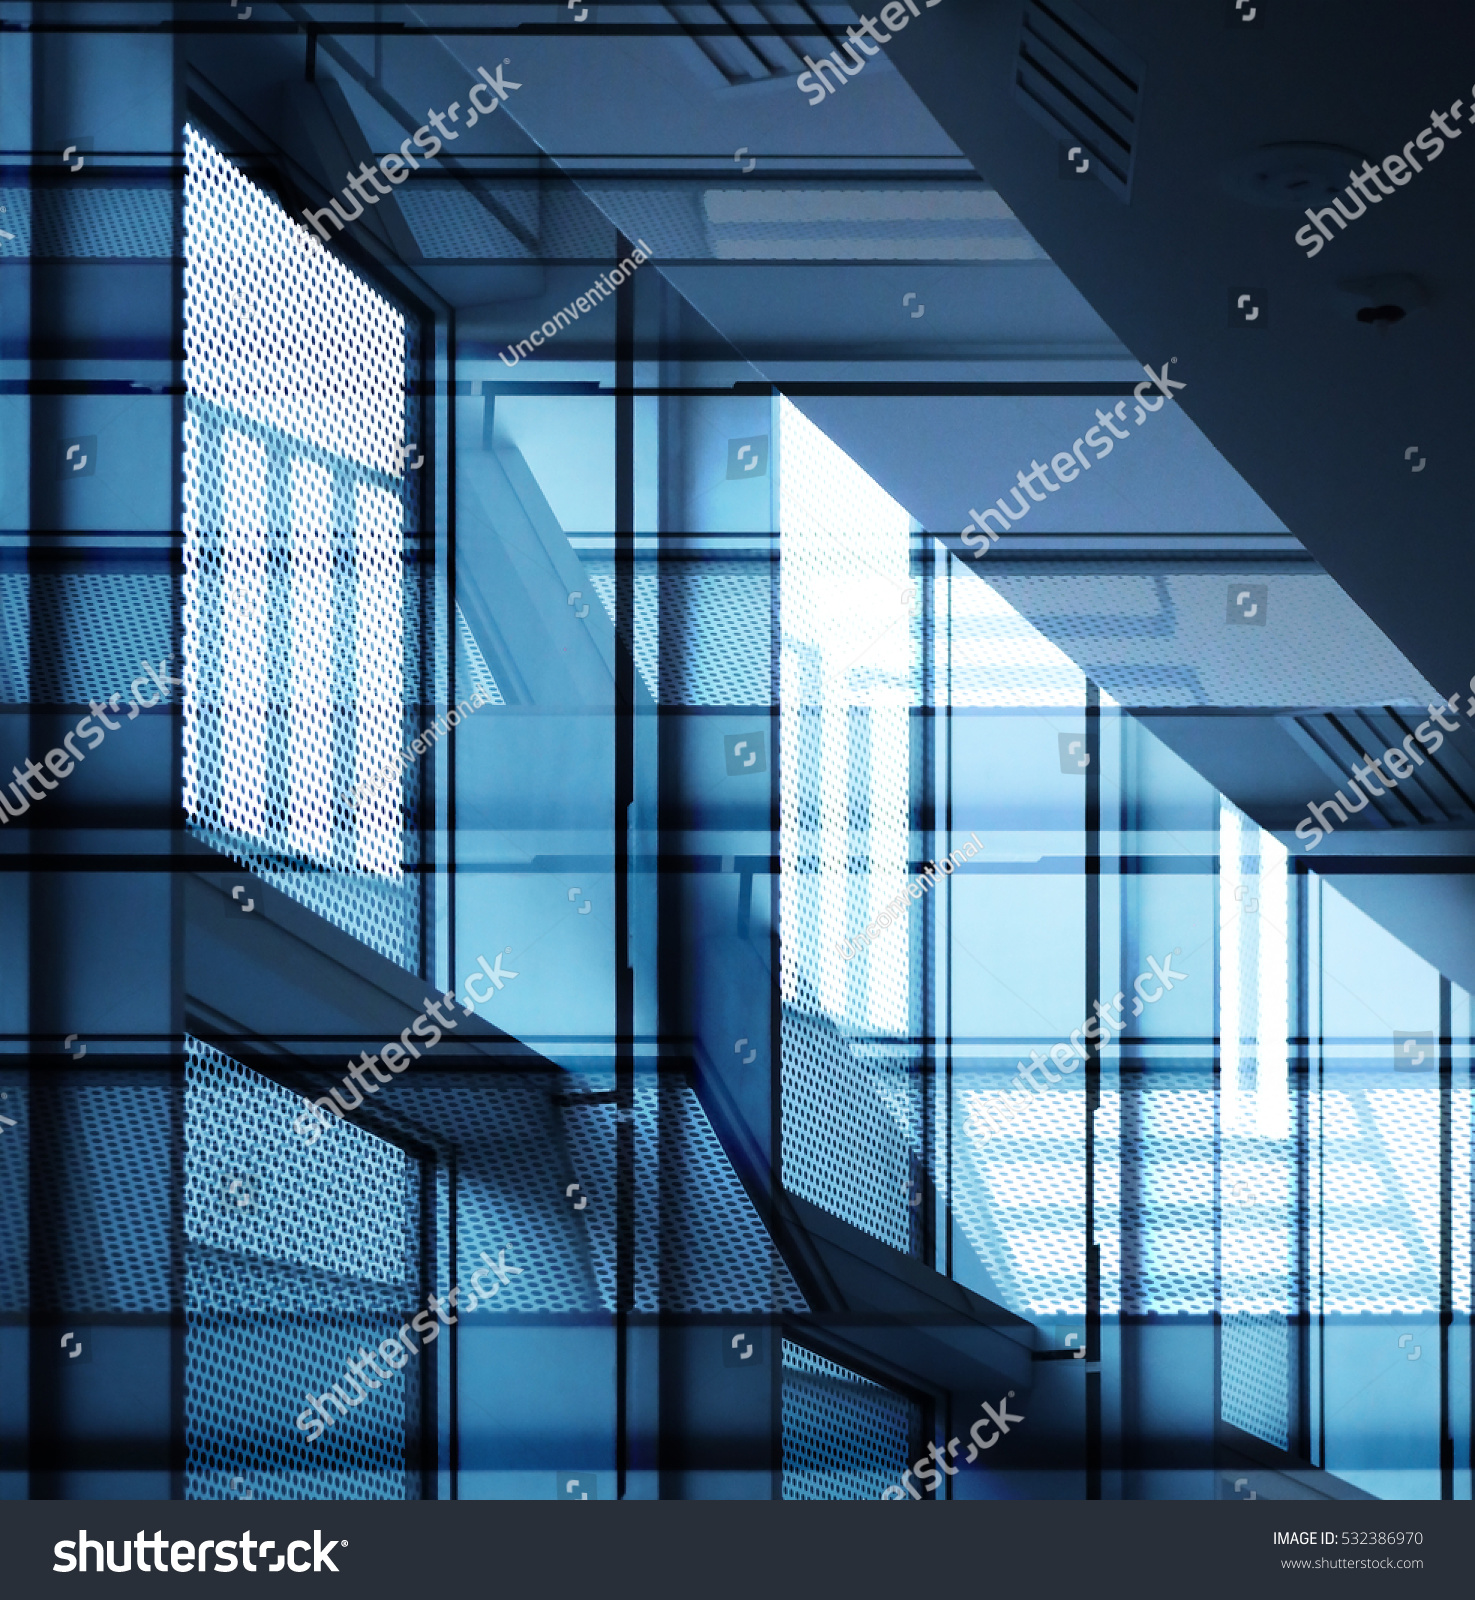 Glass Building Interior : Double exposure industrial office building interior stock